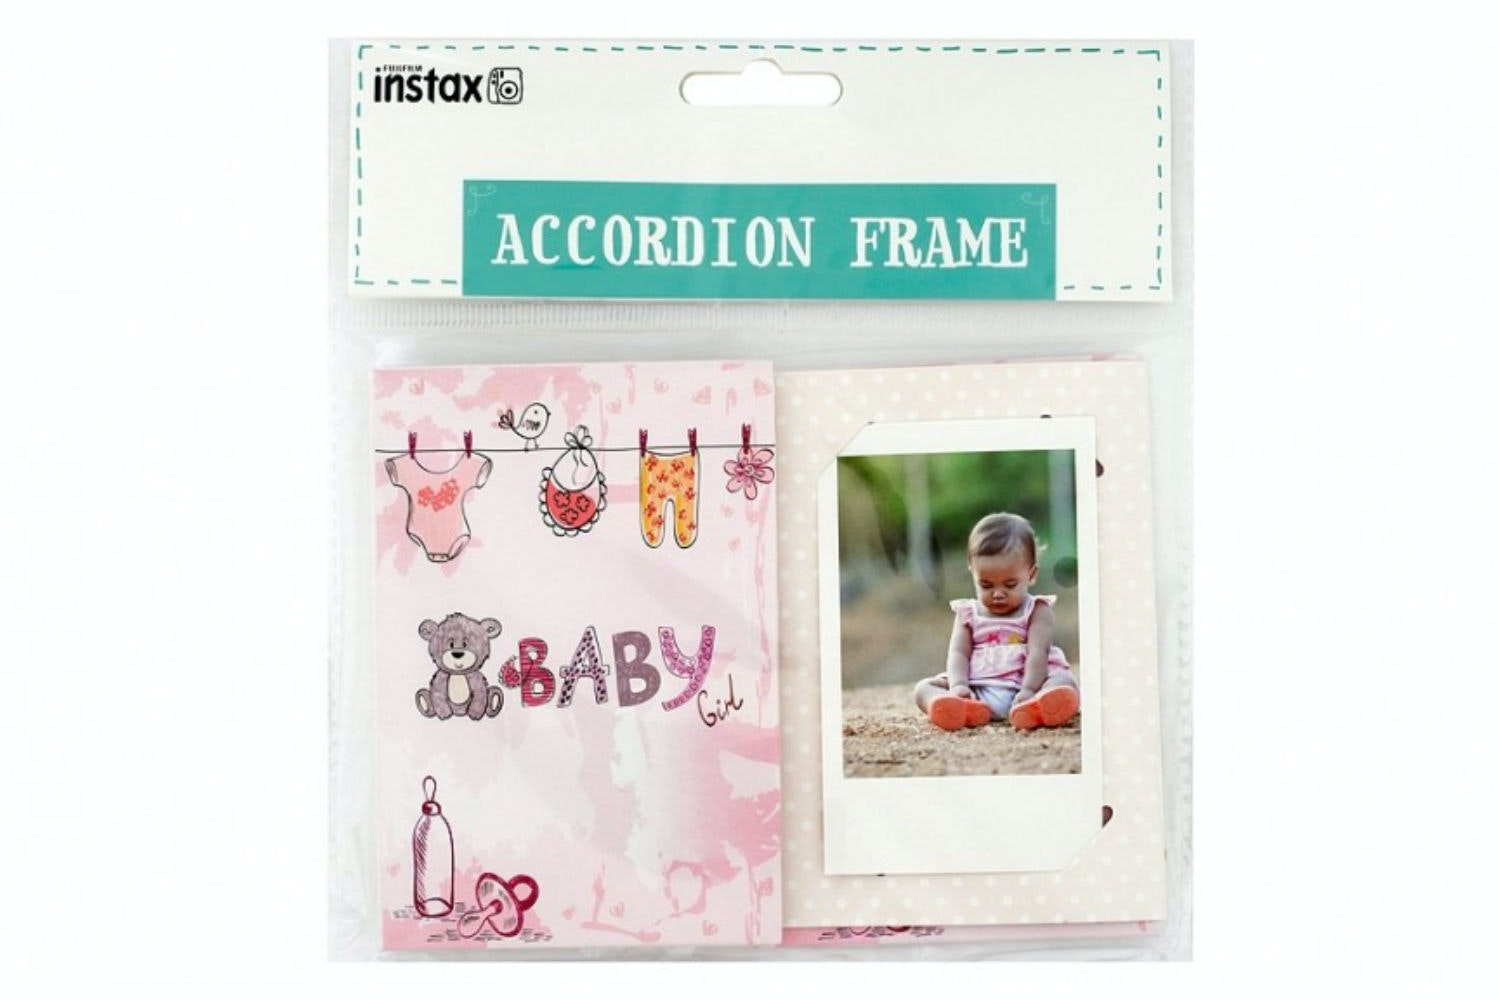 Instax Accordion Frame | Baby Girl